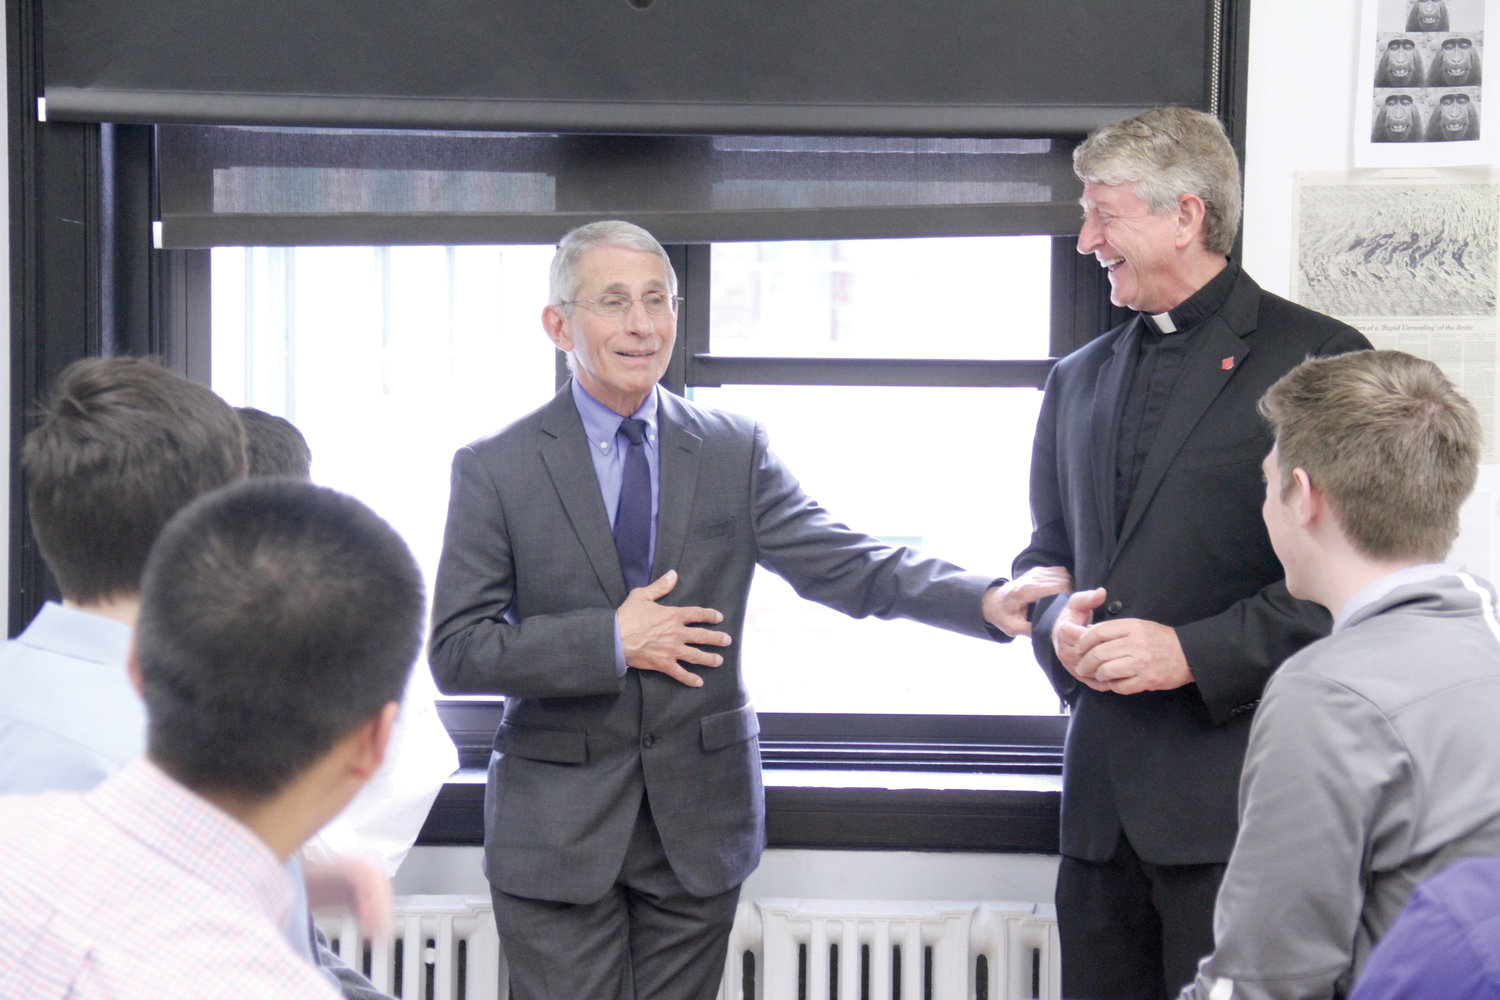 DISTINGUISHED ALUMNUS—Dr. Anthony Fauci meets with Regis High School students and the school's president, Jesuit Father Daniel Lahart, in 2019.